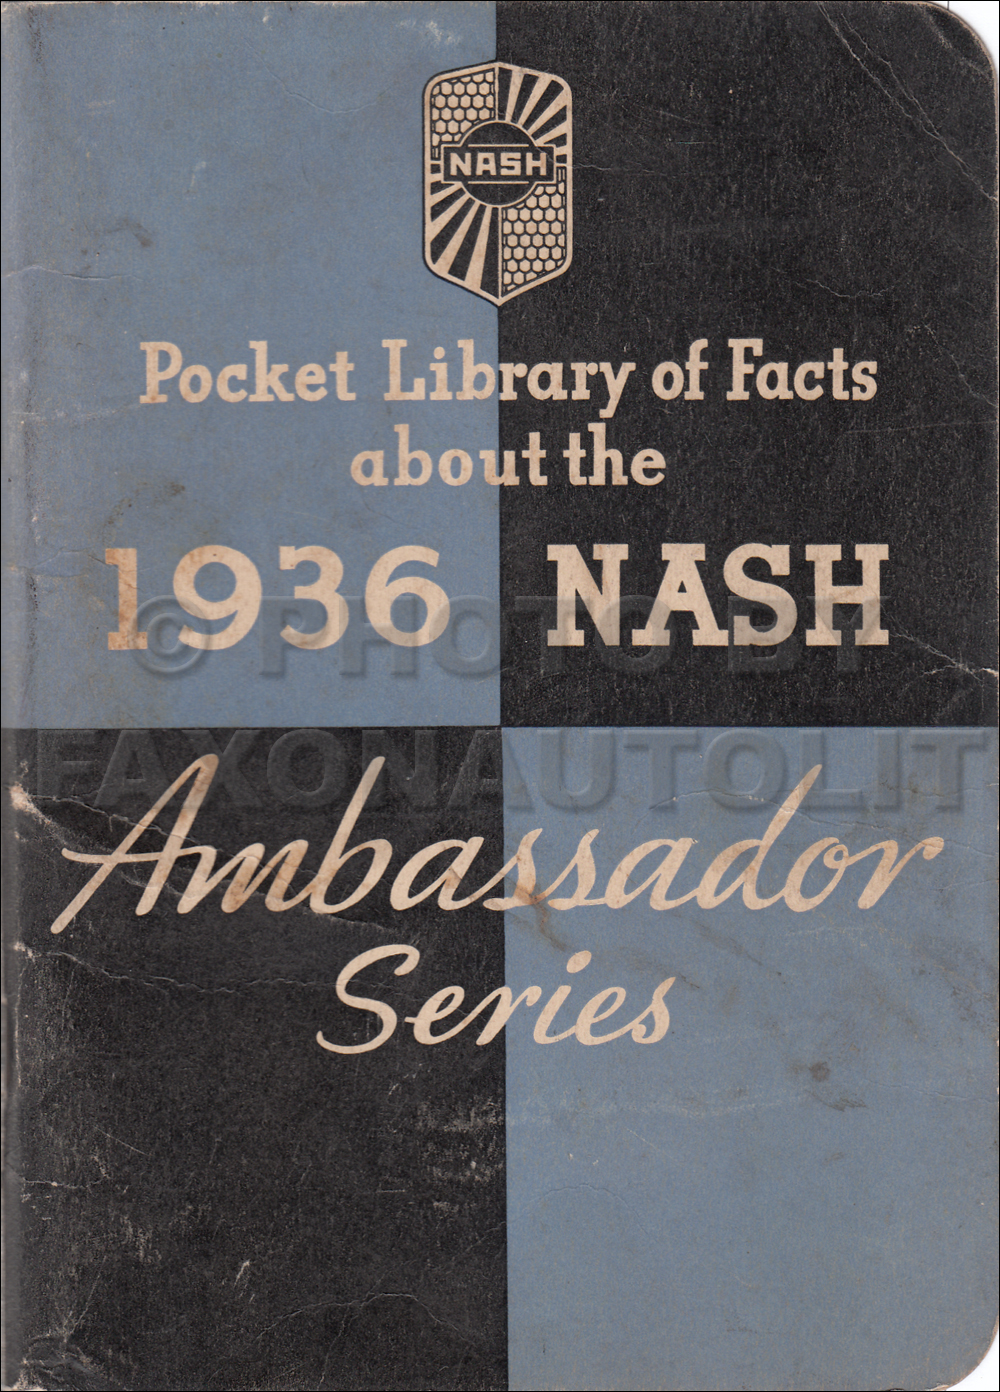 1936 Nash Ambassador Facts Book Original